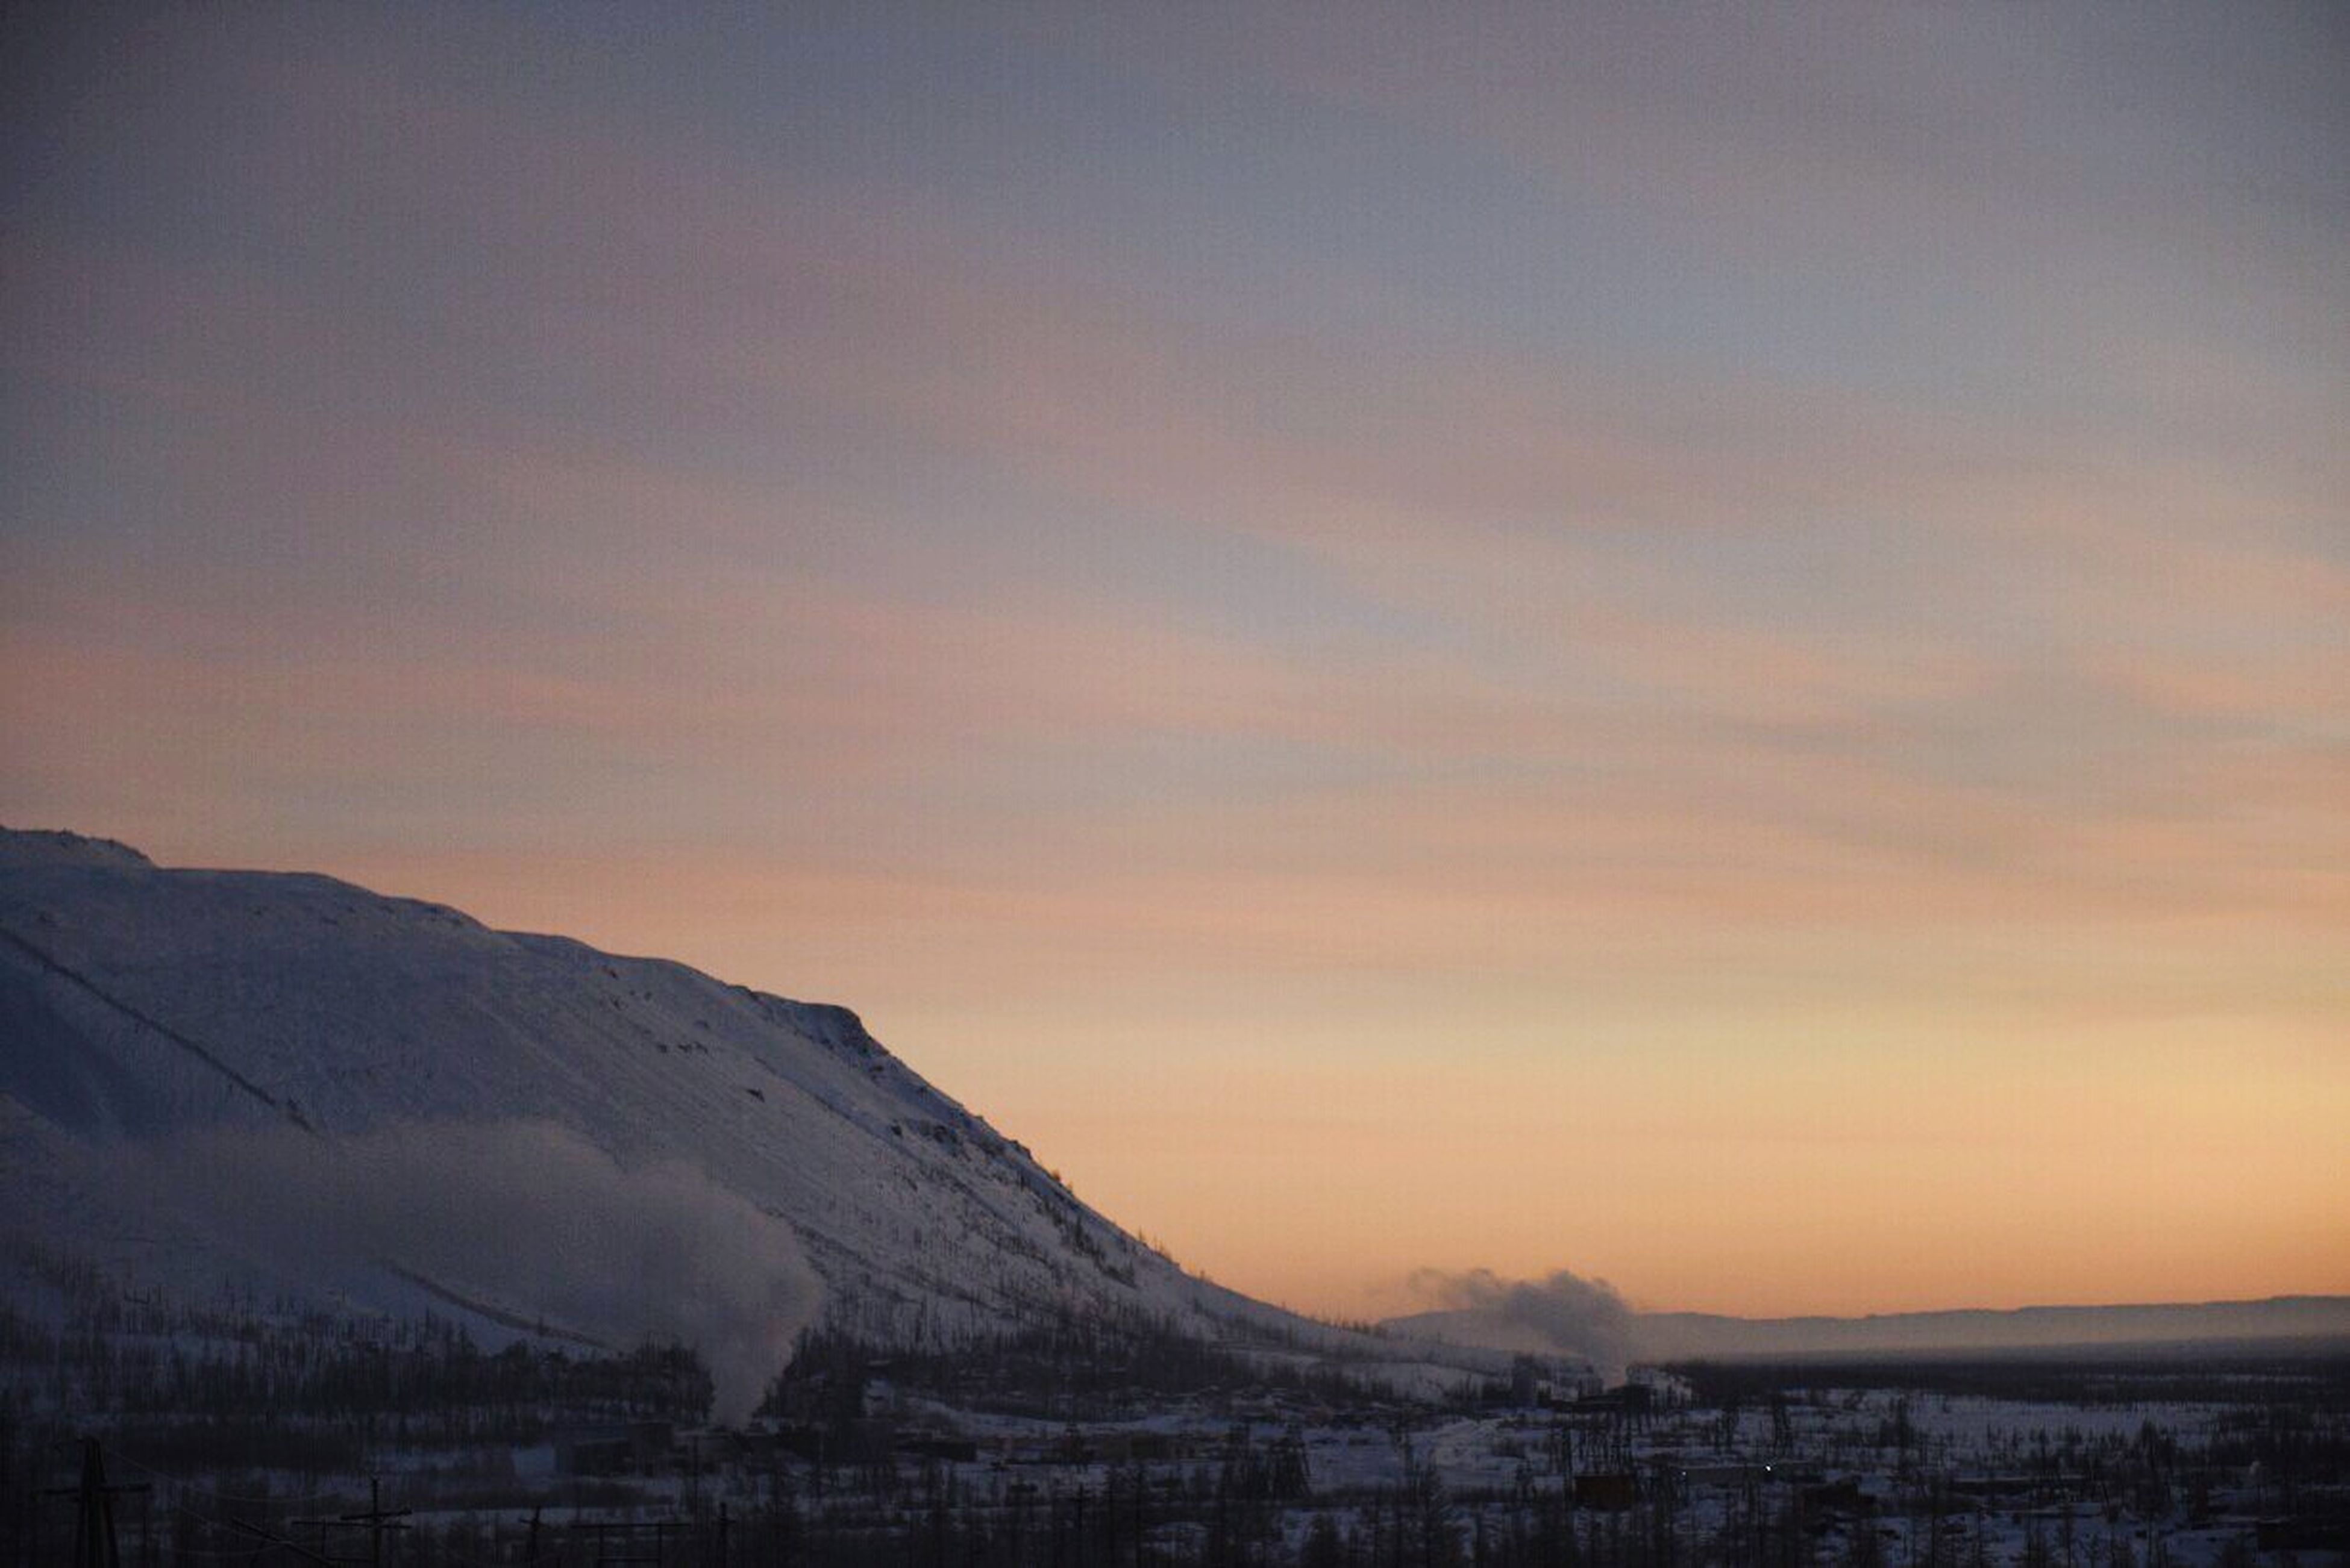 winter, snow, mountain, cold temperature, sunset, scenics, tranquil scene, mountain range, beauty in nature, season, tranquility, sky, landscape, weather, orange color, nature, covering, snowcapped mountain, cloud - sky, idyllic